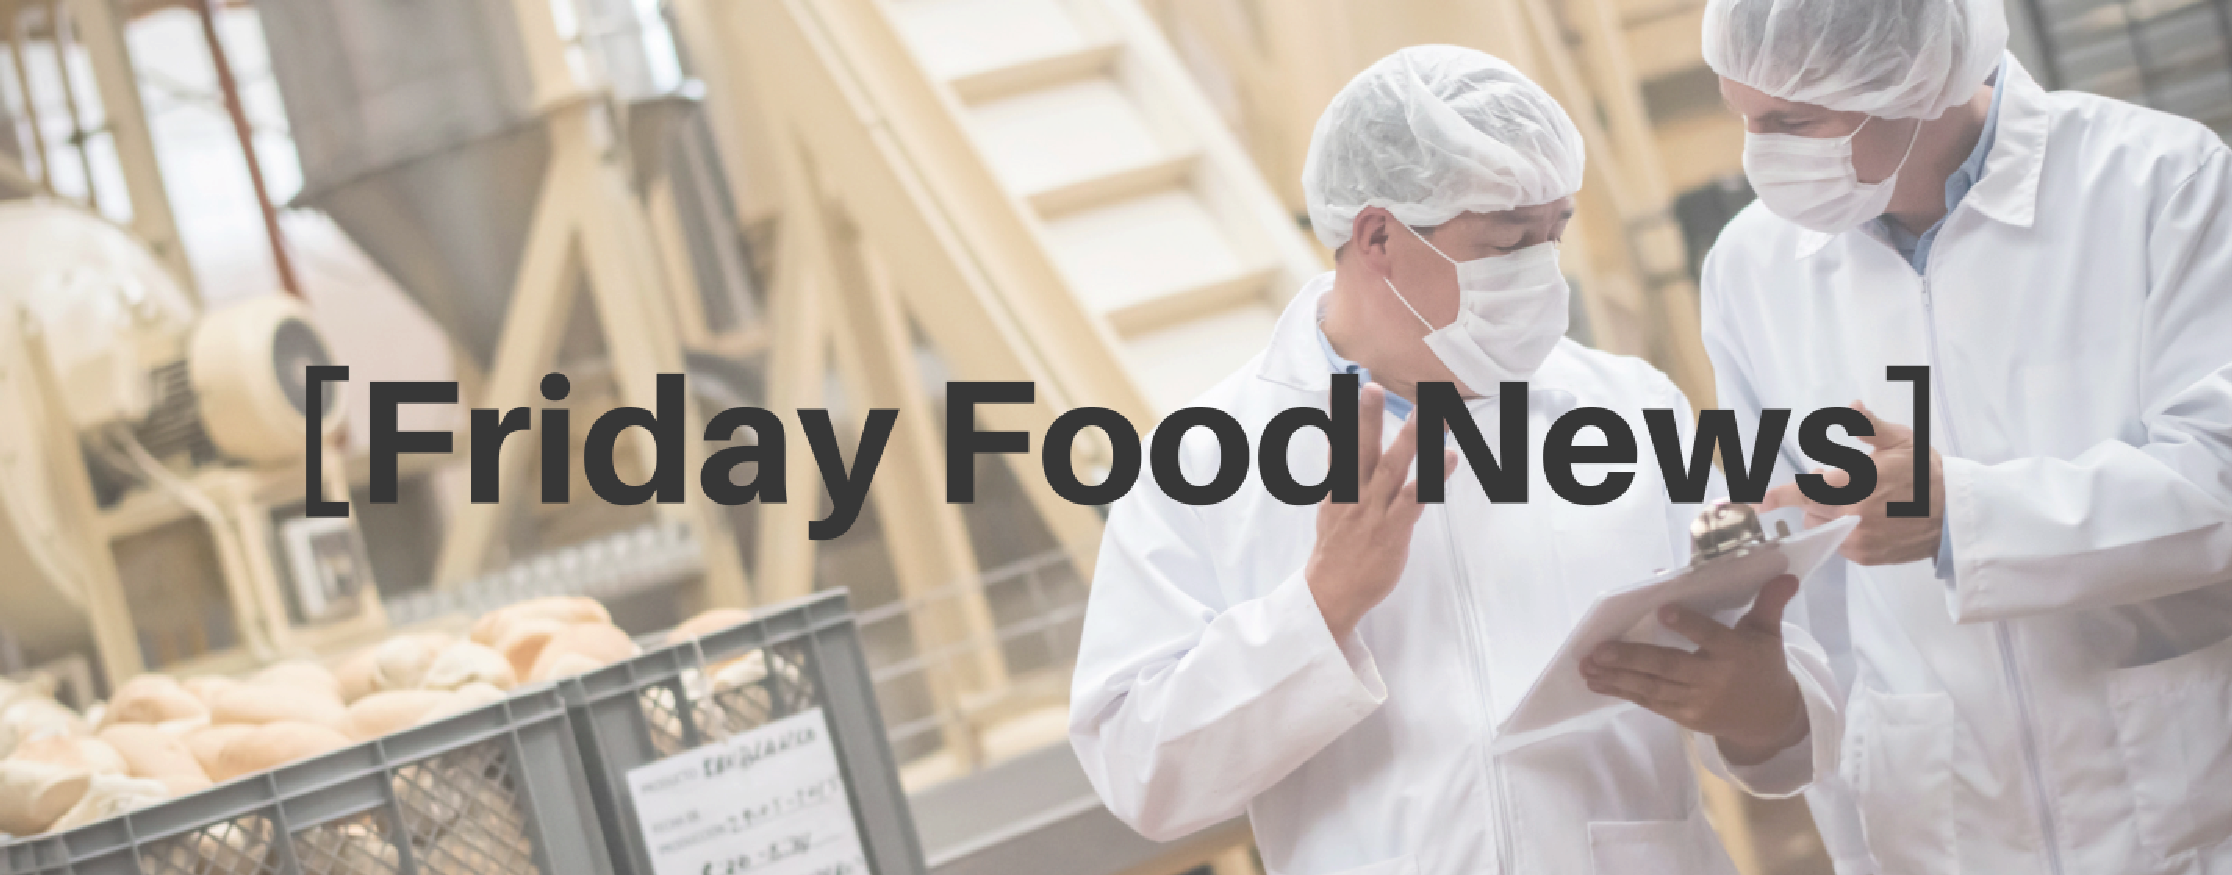 Friday Food News: The FDA Has Been Busy